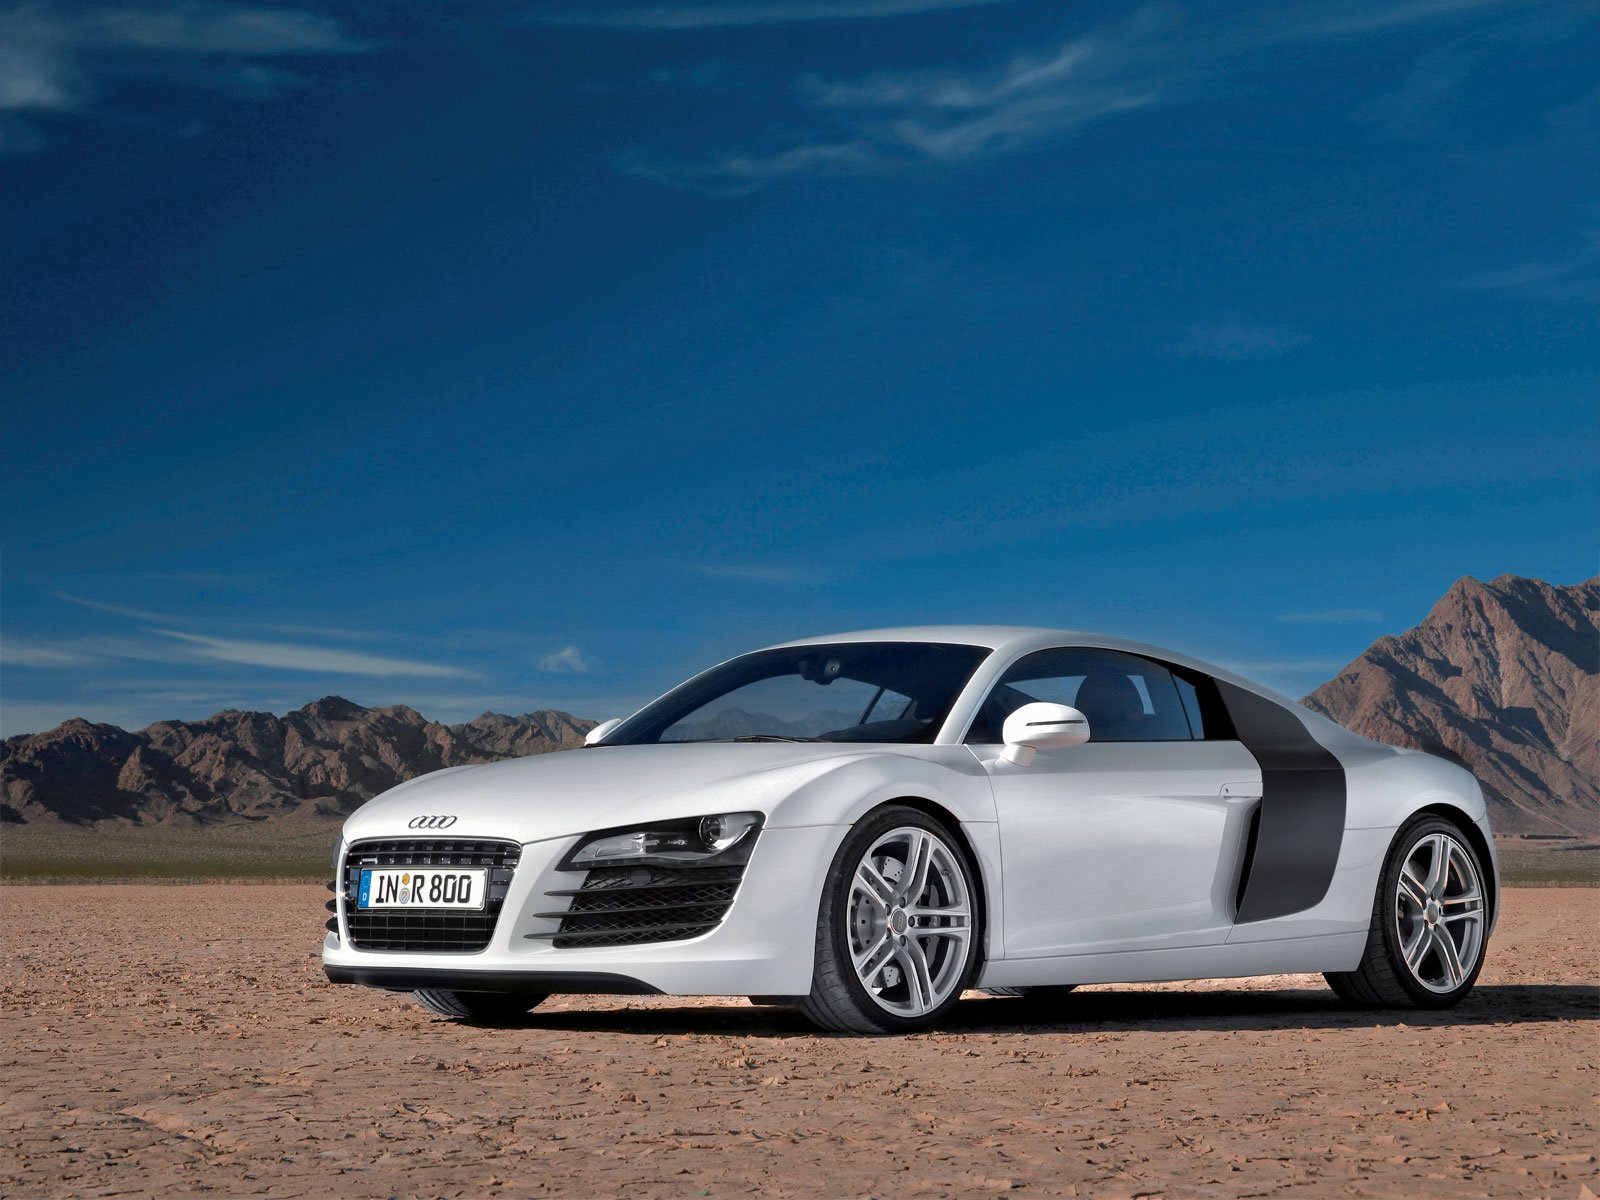 Latest Audi Car Hd Wallpapers Nice Wallpapers Free Download